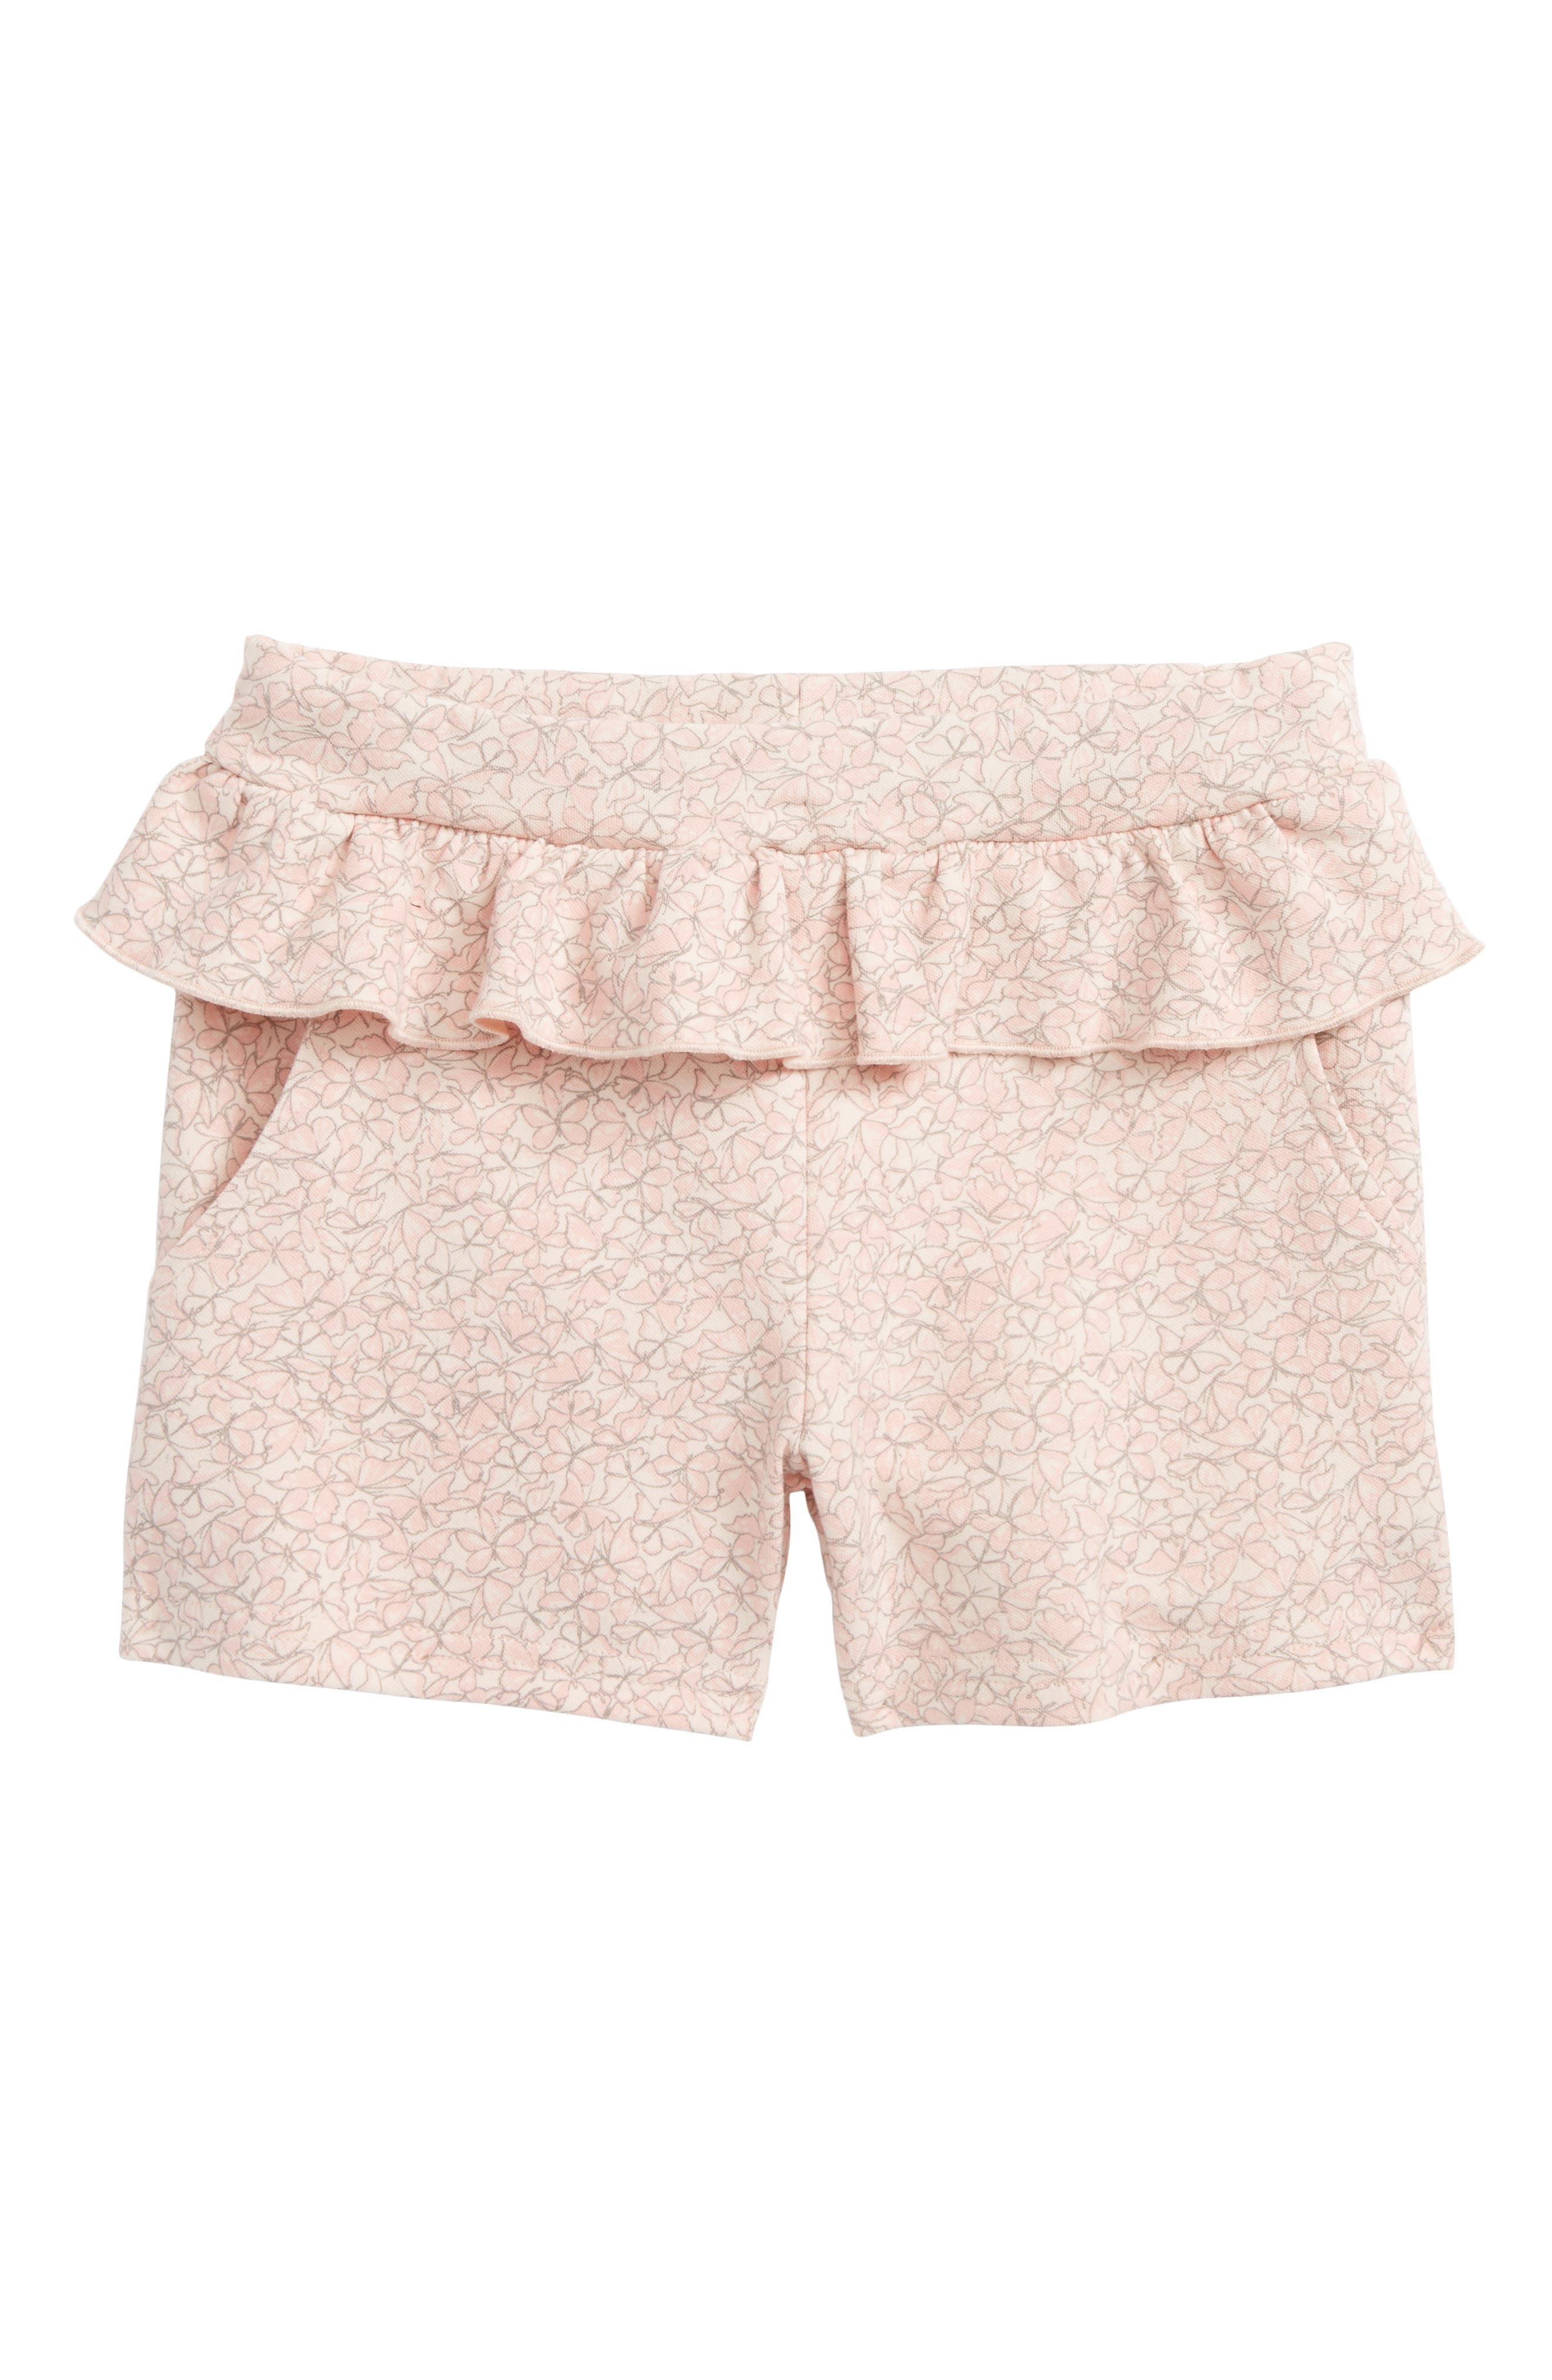 Butterfly Ruffle Shorts,                             Main thumbnail 1, color,                             650